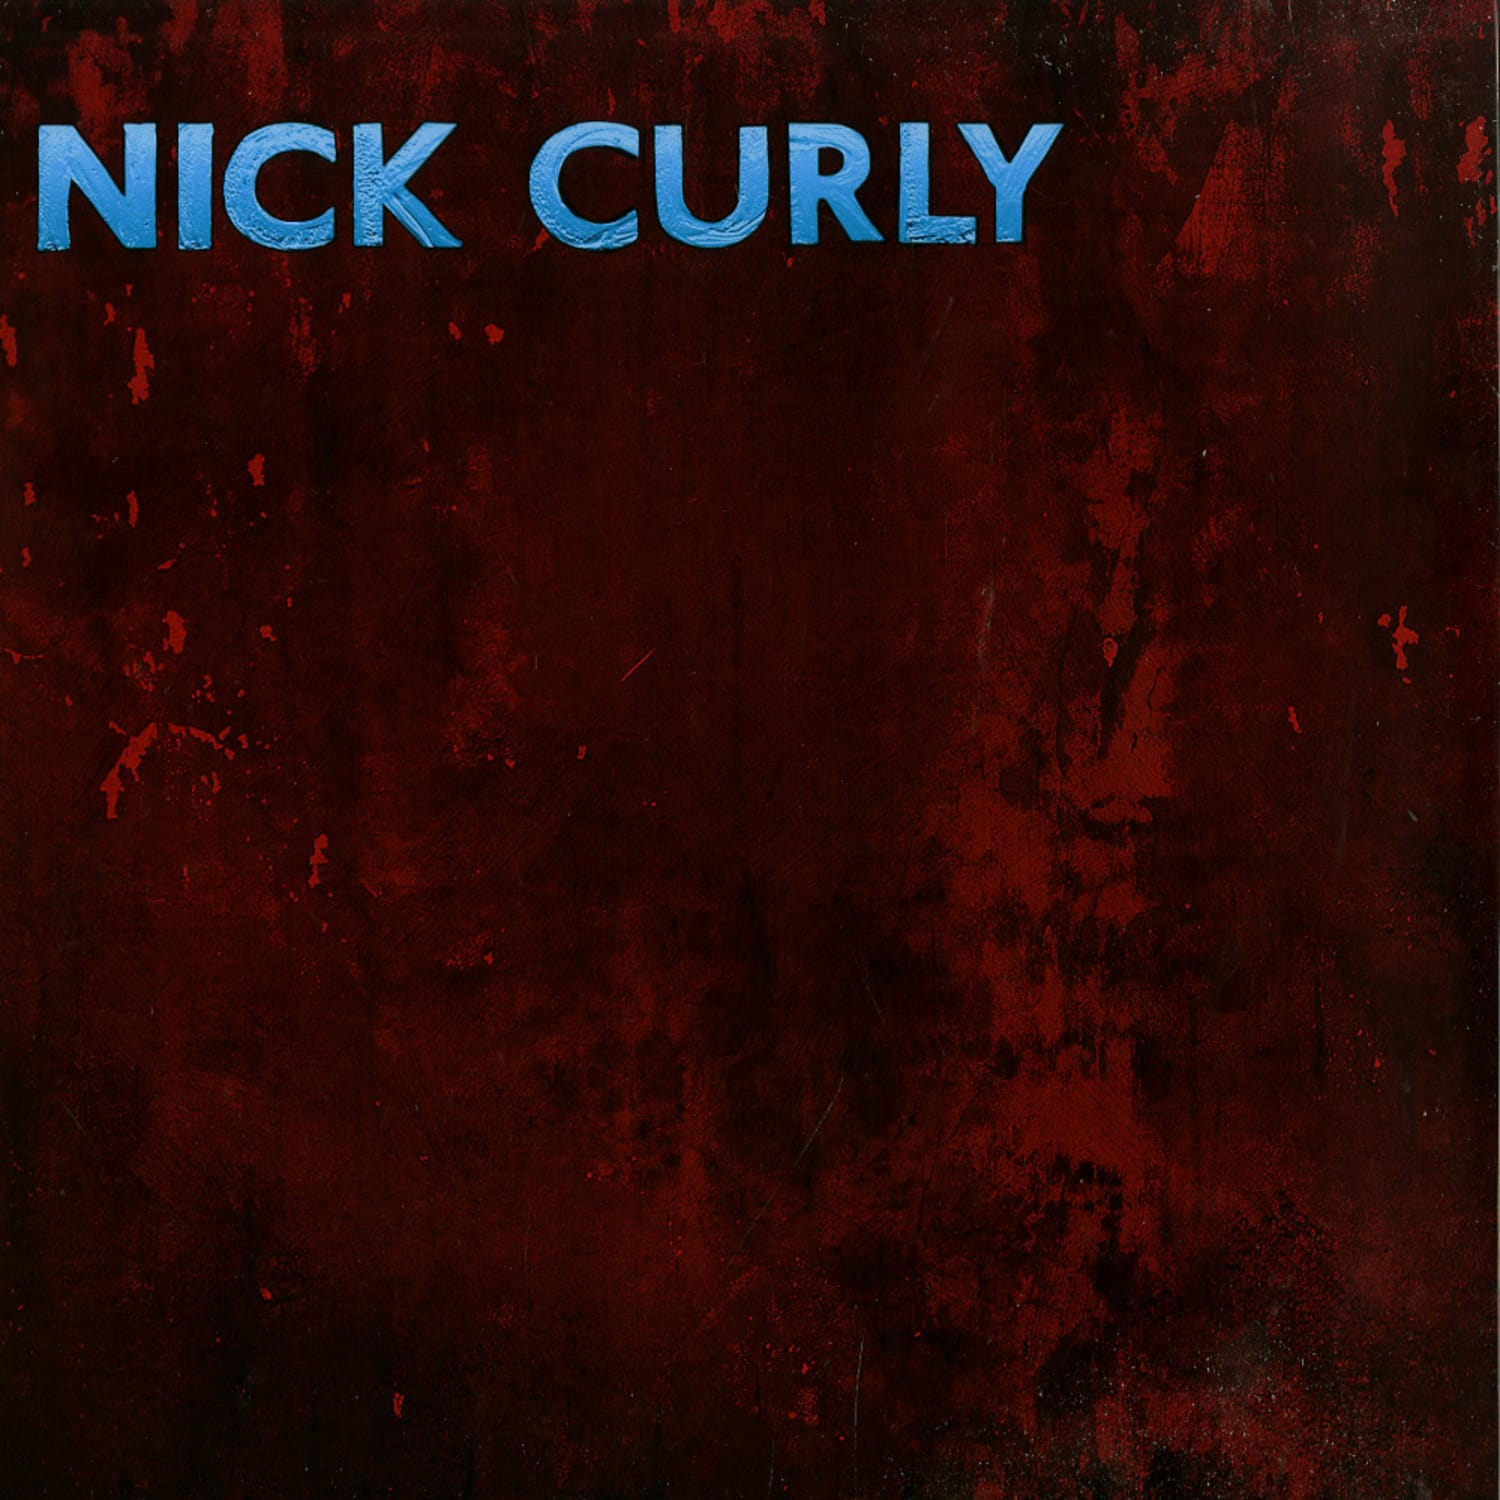 Nick Curly - TIME WILL TELL